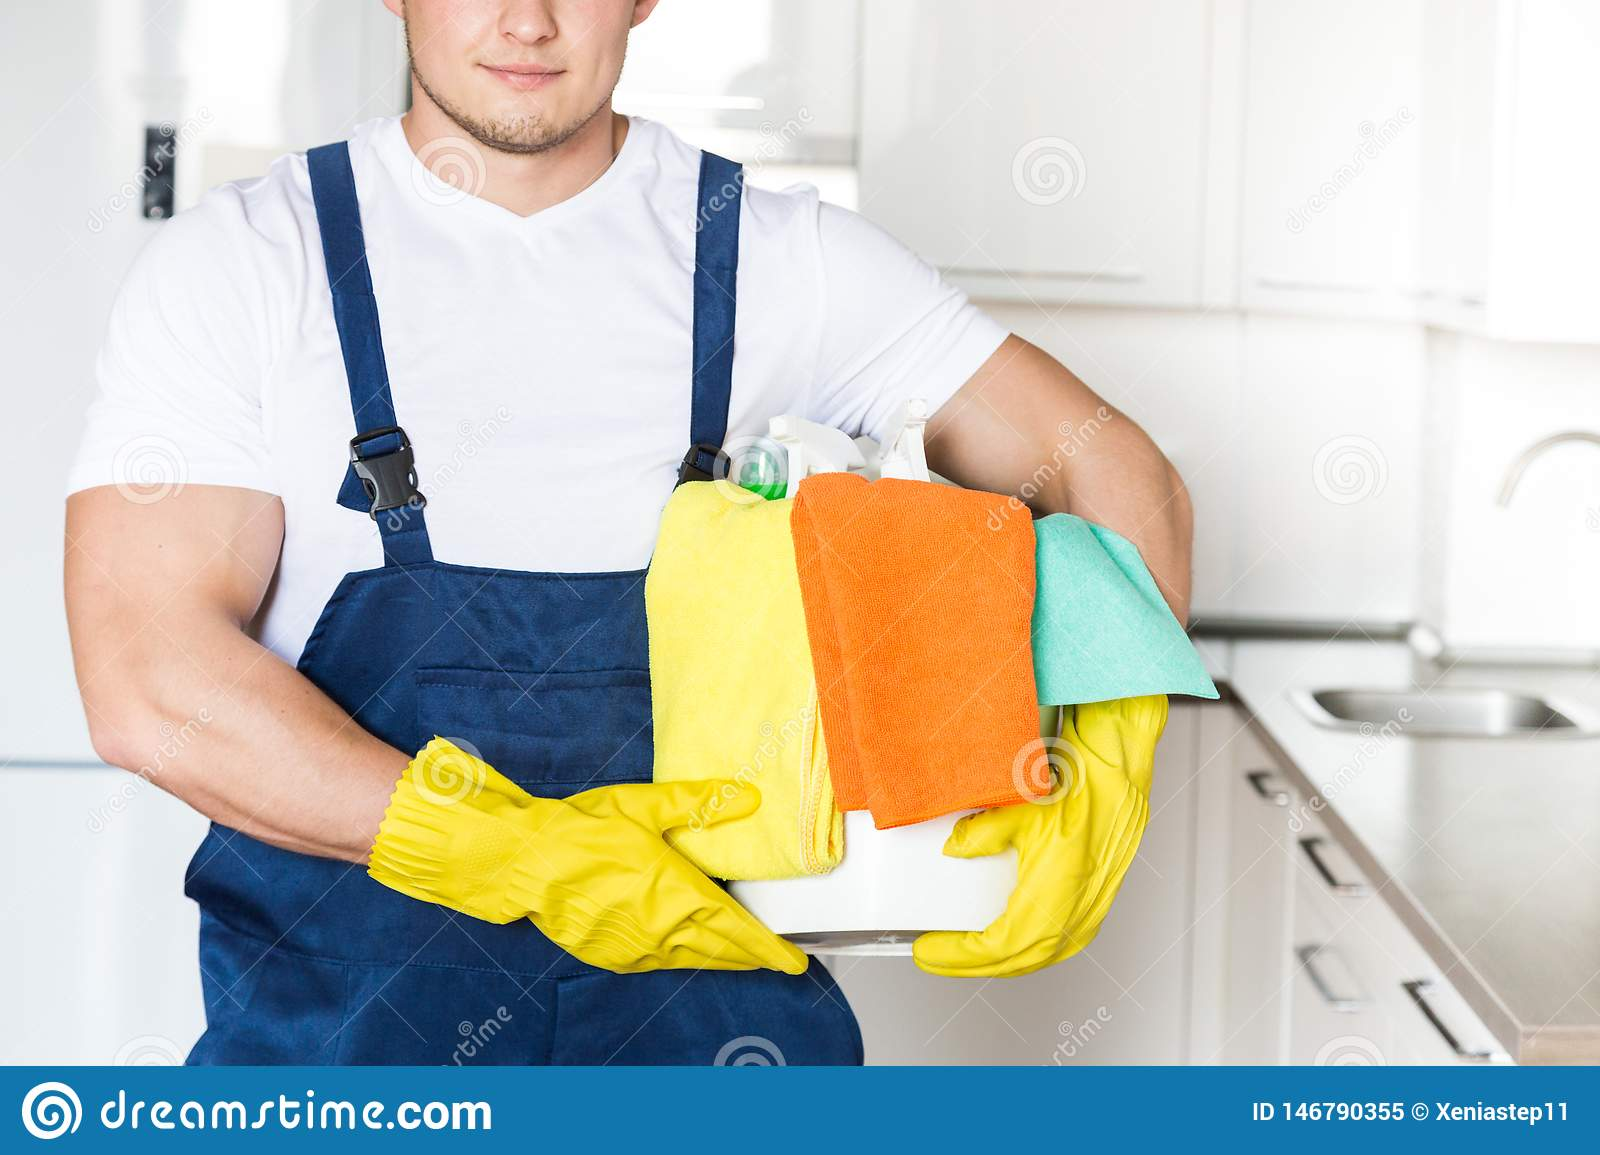 Cleaning service with professional equipment during work. professional kitchenette cleaning, sofa dry cleaning, window